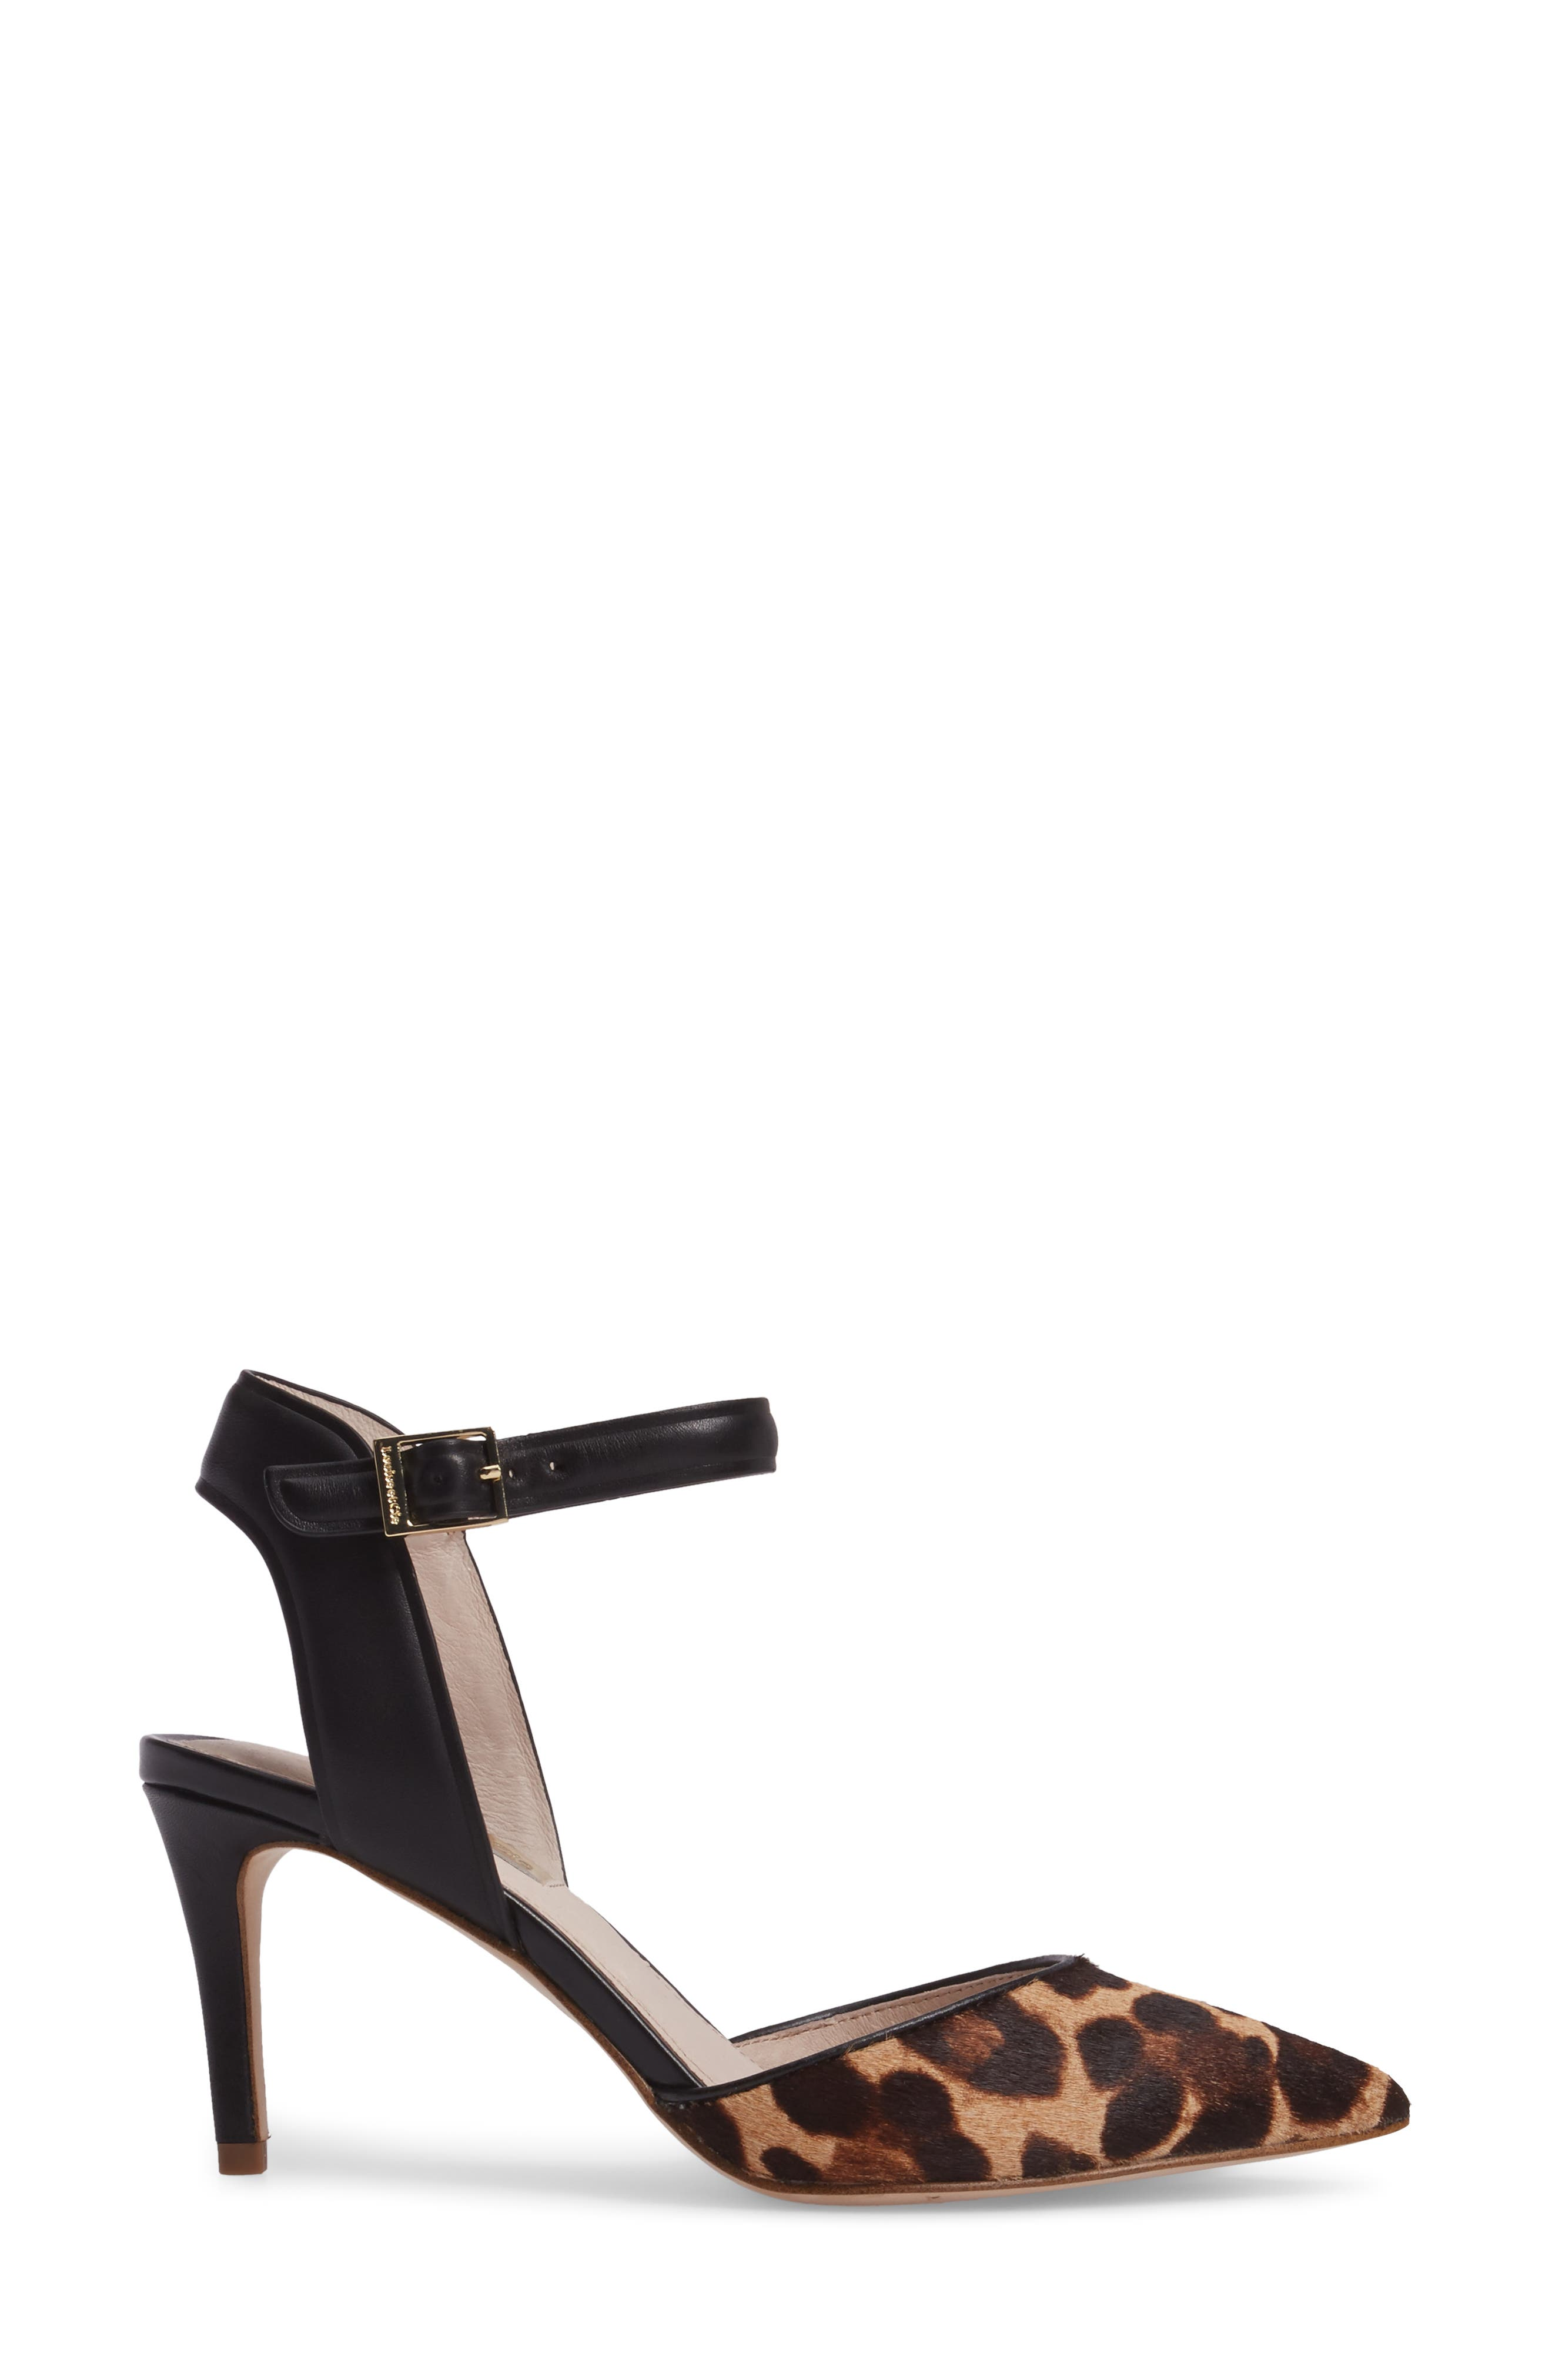 Kota Ankle Strap Pump,                             Alternate thumbnail 3, color,                             Leopard Print Calf Hair